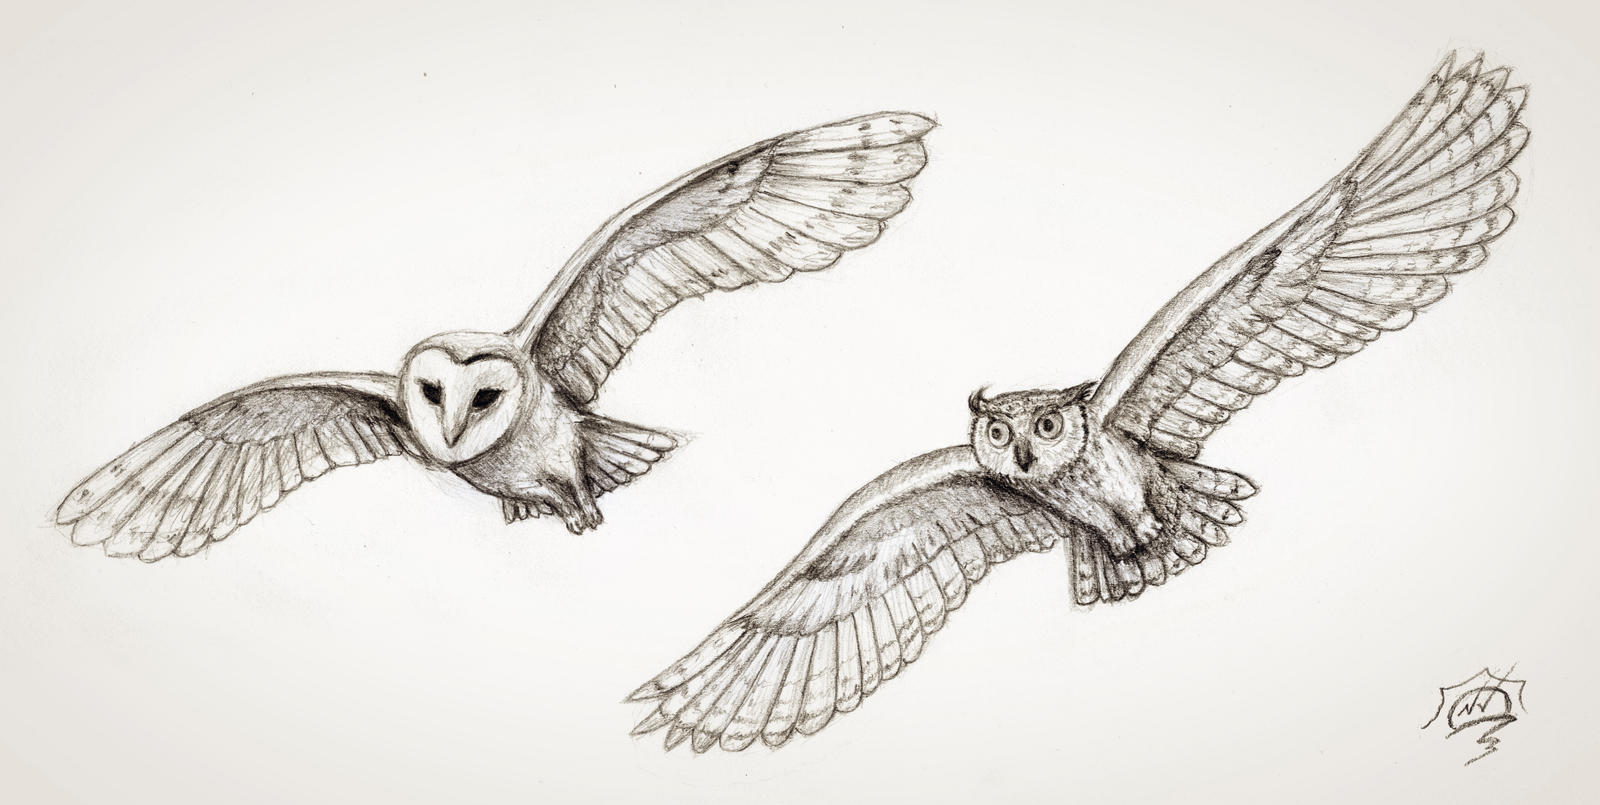 Easy Line Drawings Of Animals : 2 flying owls by snoeffel on deviantart